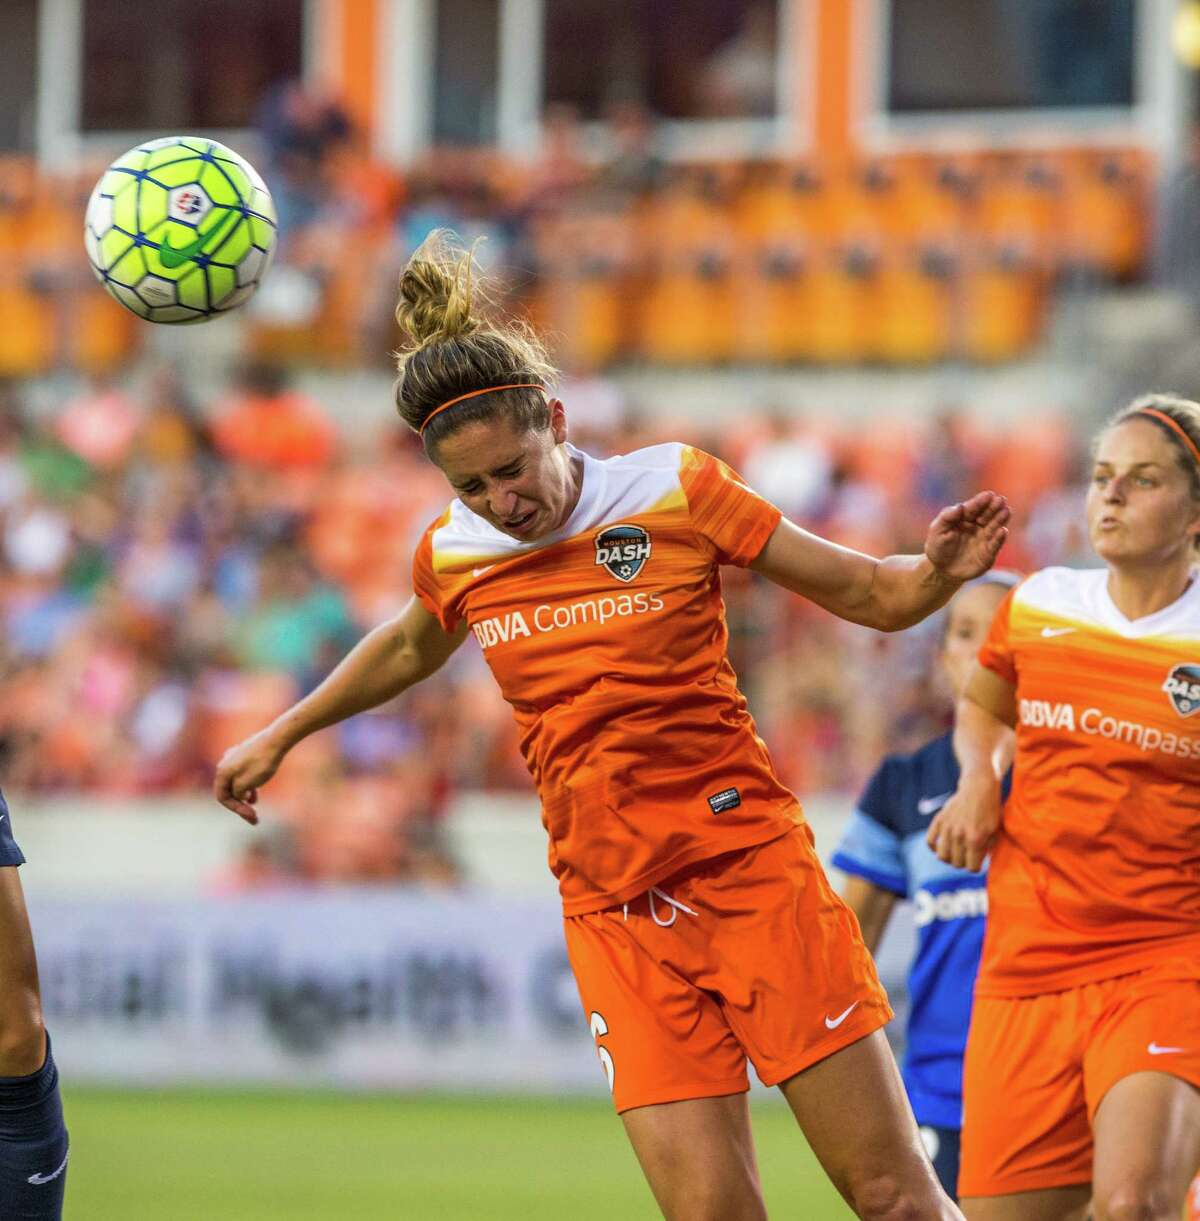 Houston Dash midfielder Morgan Brian (6) head butts the ball away from FC Kansas City defender Brittany Taylor (13) from scoring during the first half of action between the Houston Dash and the FC Kansas City during a soccer game at BBVA Compass, Sunday, June 19, 2016, in Houston.